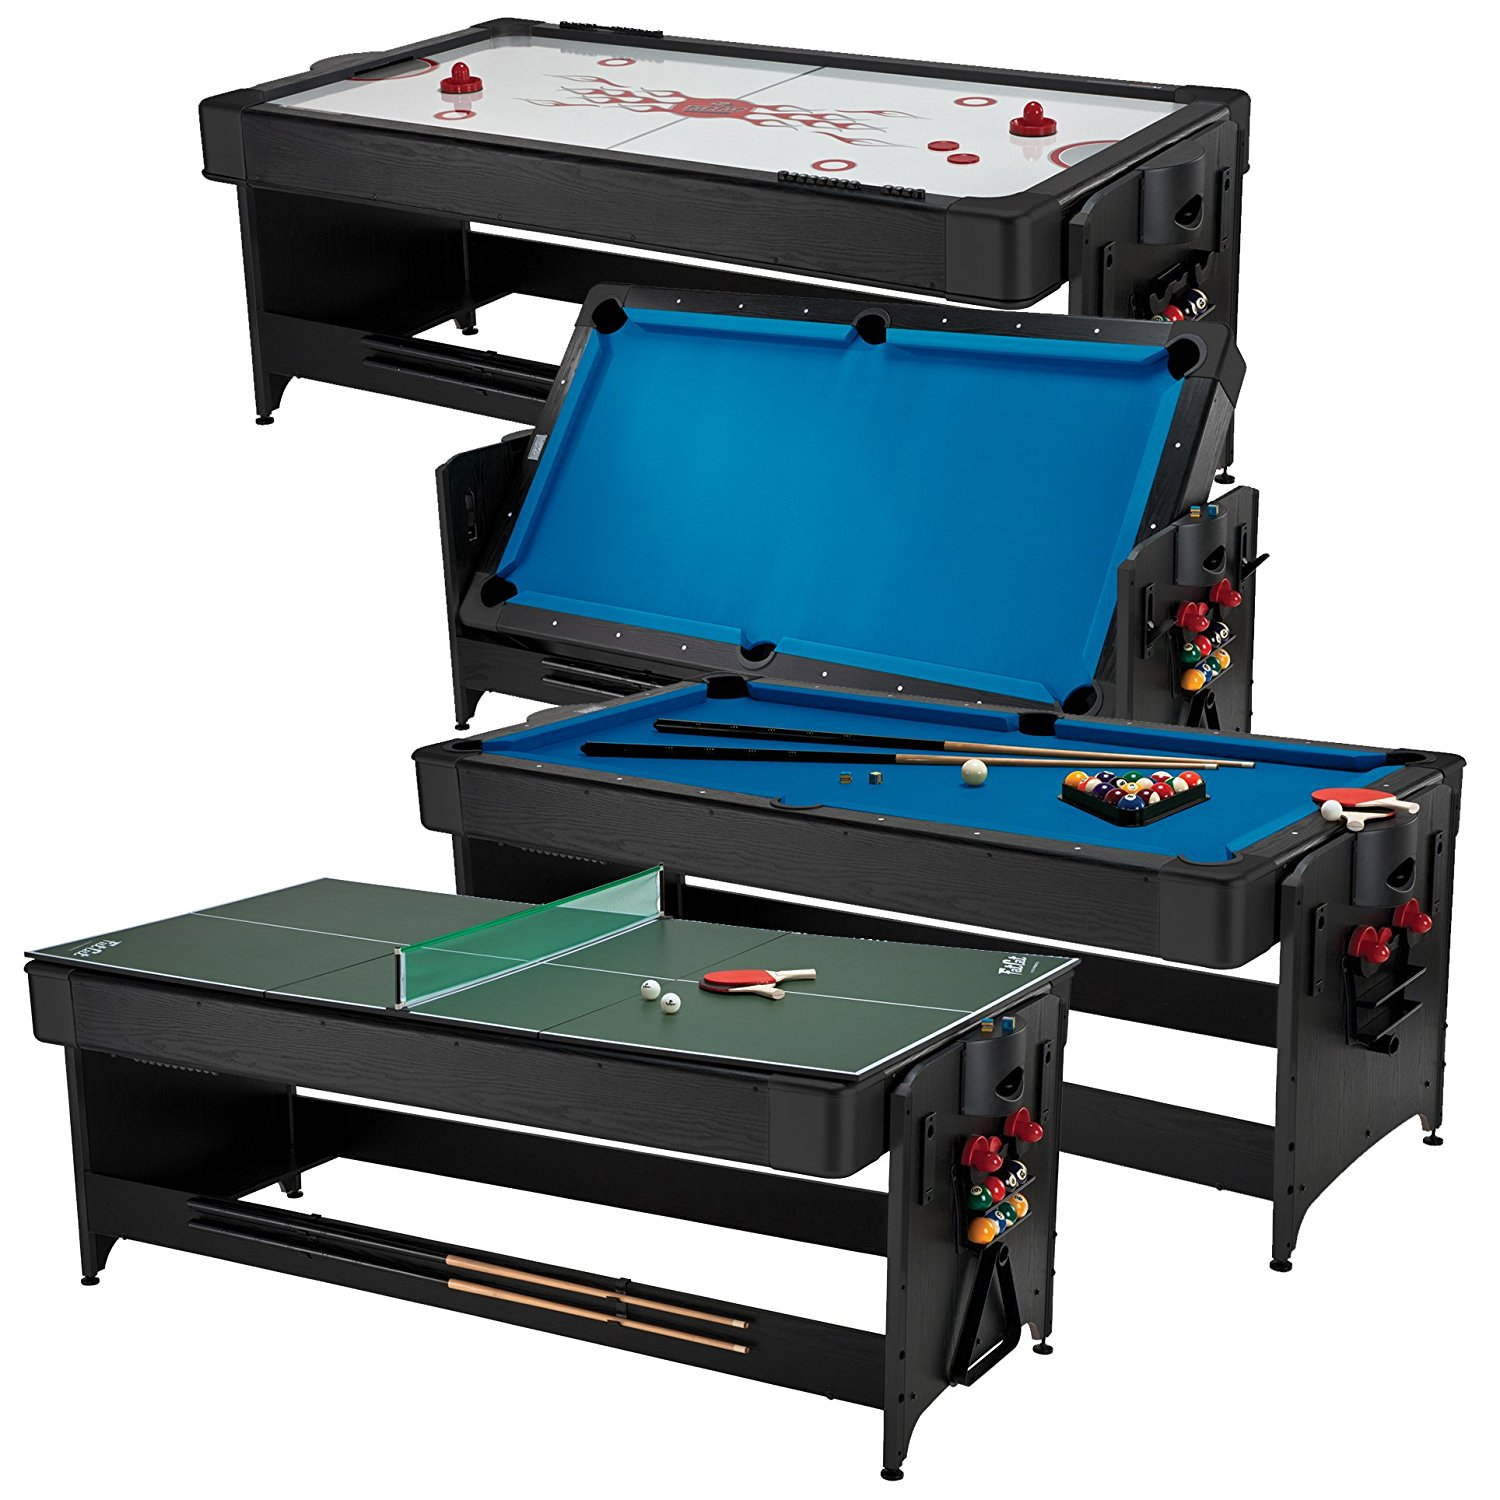 All-in-One Gaming Table